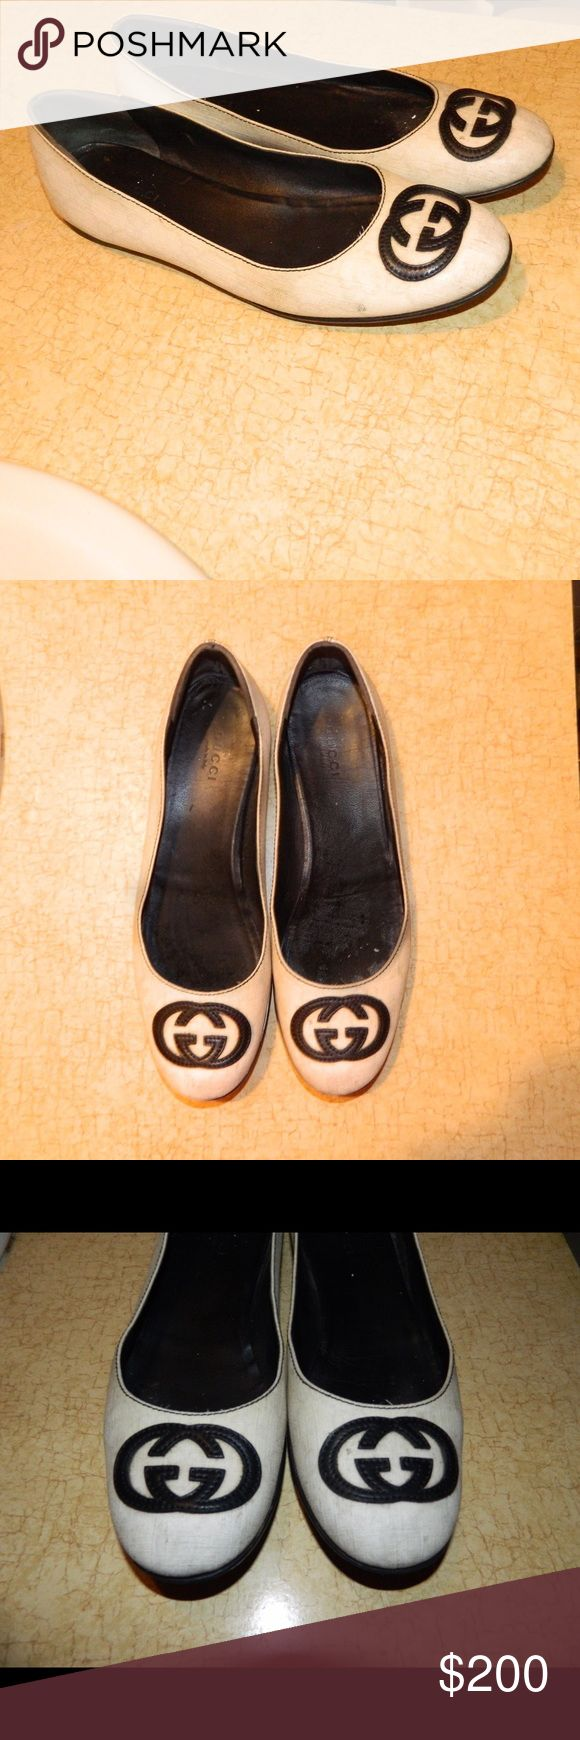 Limited GUCCI Flats White GUCCI flats, limited edition. The white version of this model is rare. The shoes are in great shape. On the soles the marks are because of water because I just washed them lol. Everything as you see in the picture. PRICE IS FIRM, I'm not taking offers on this one. They are beautiful and this is pretty much a rare chance to get white GUCCI ballerinas that go with any outfit there possible. Xoxo Gucci Shoes Flats & Loafers